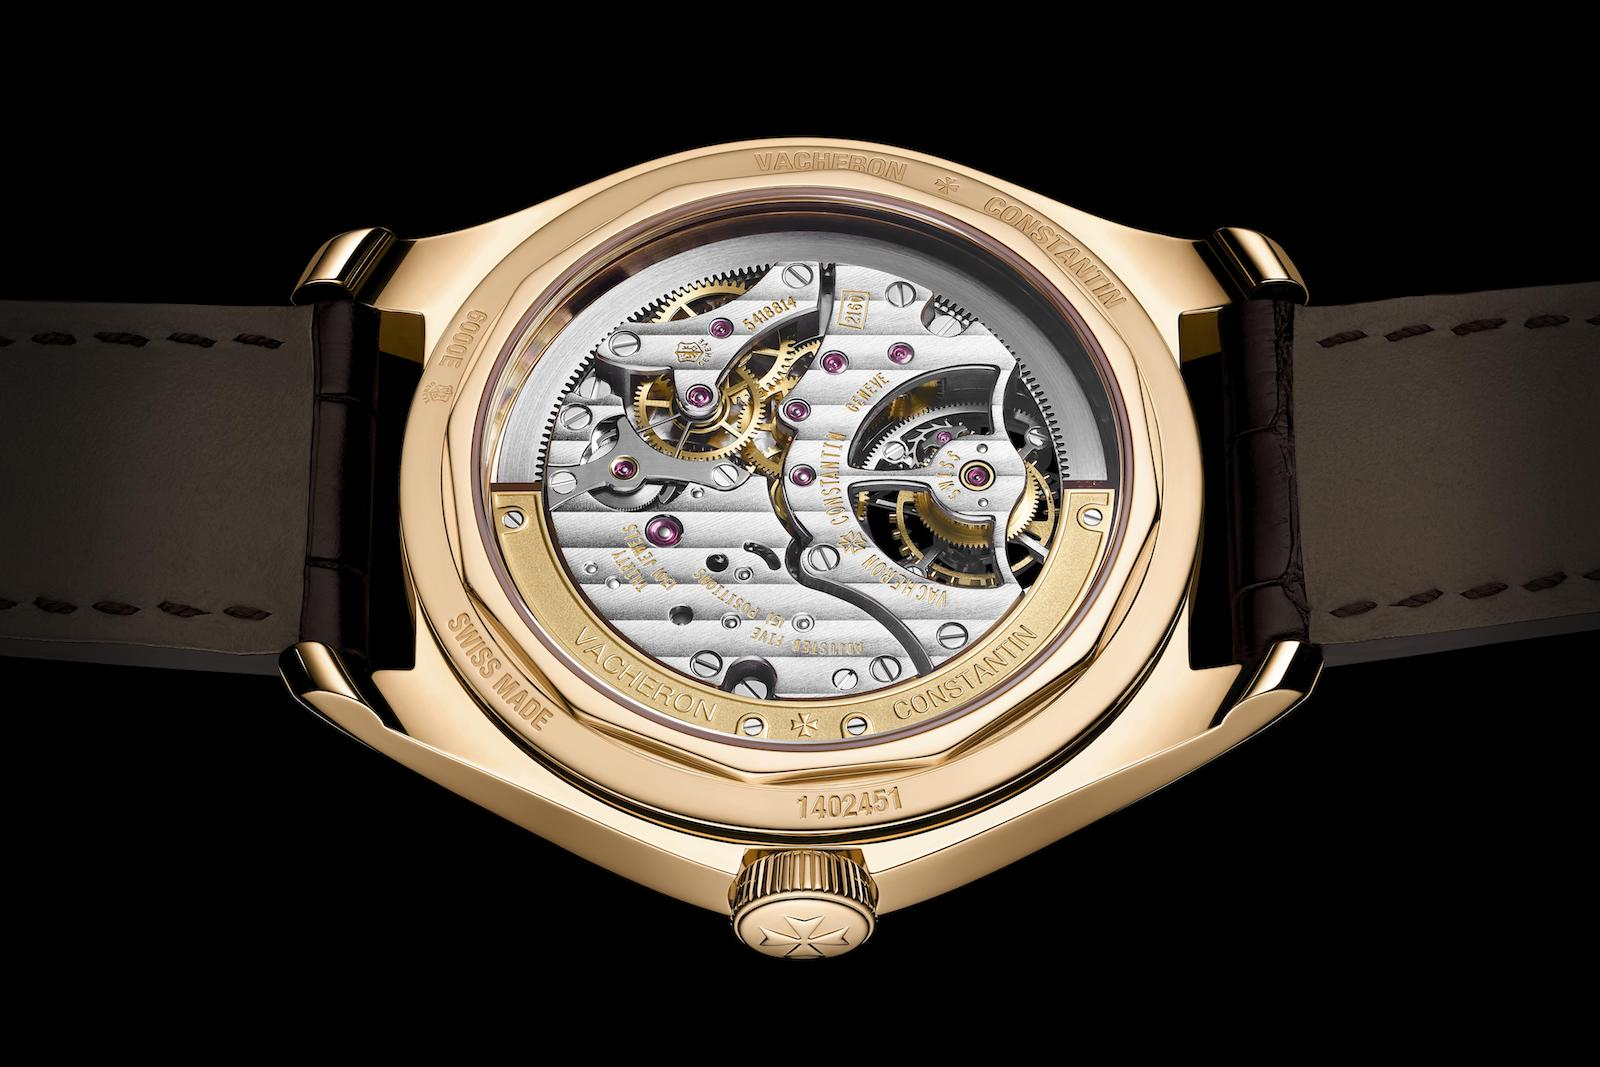 Vacheron Constantin Fiftysix Tourbillon - back